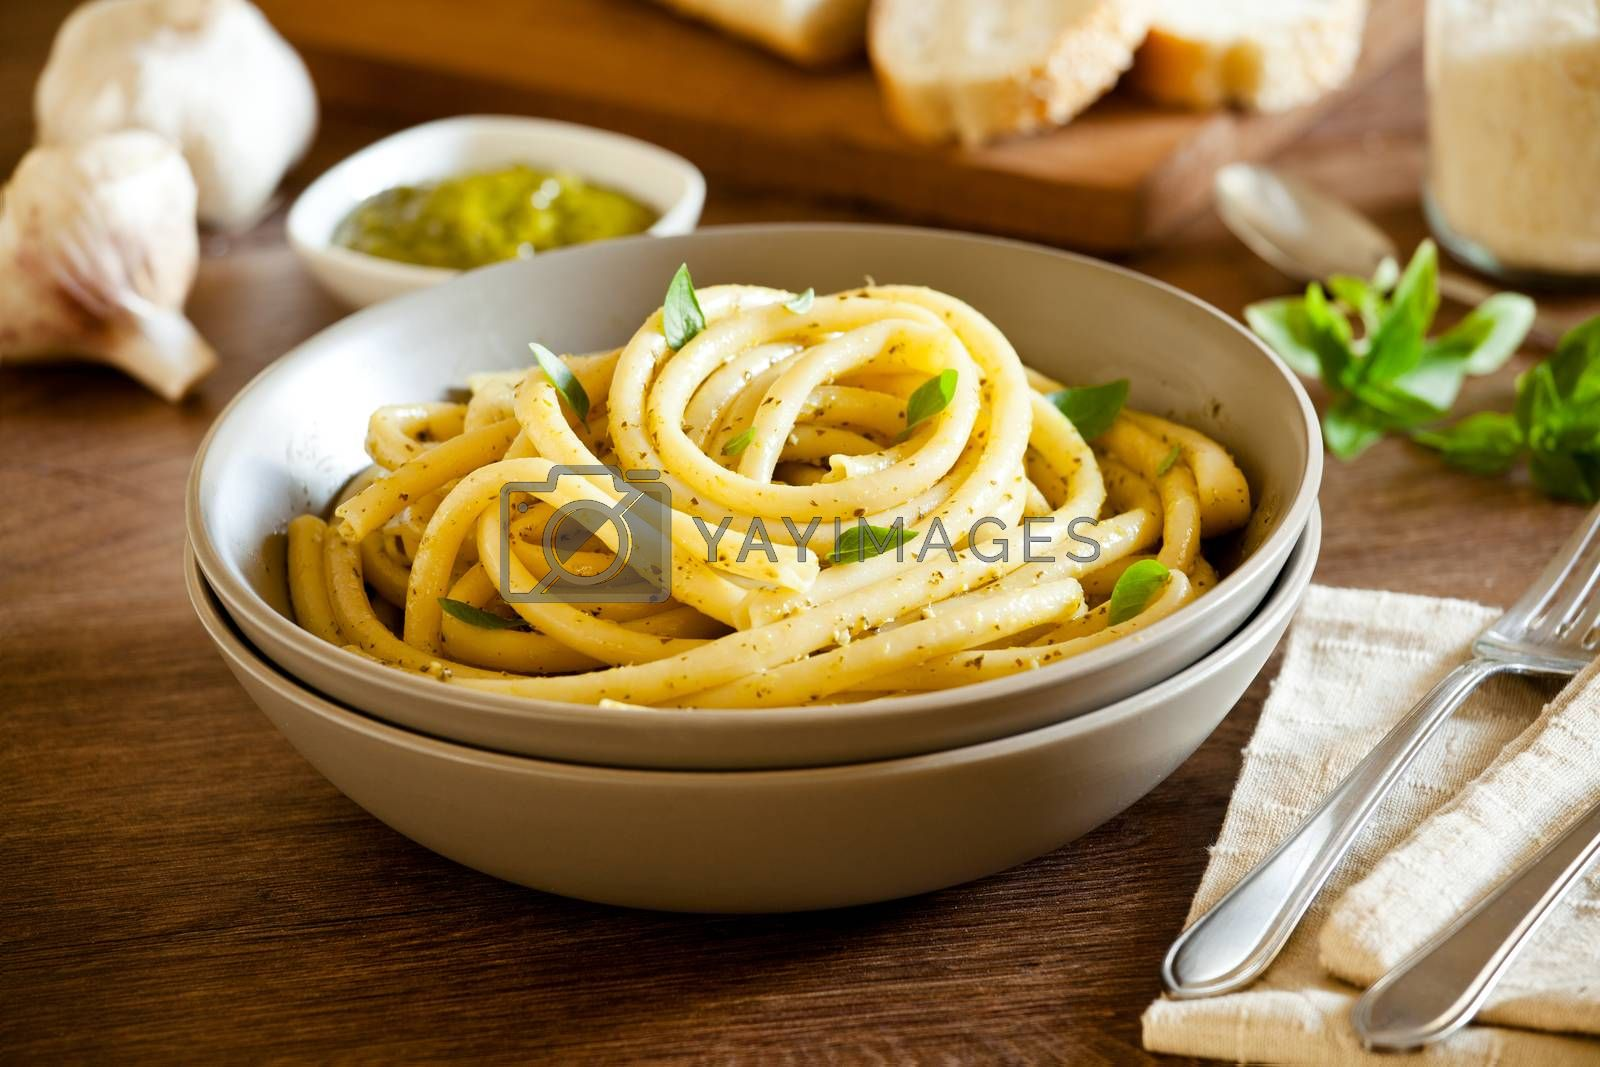 Bowl of pasta with homemade pesto sauce